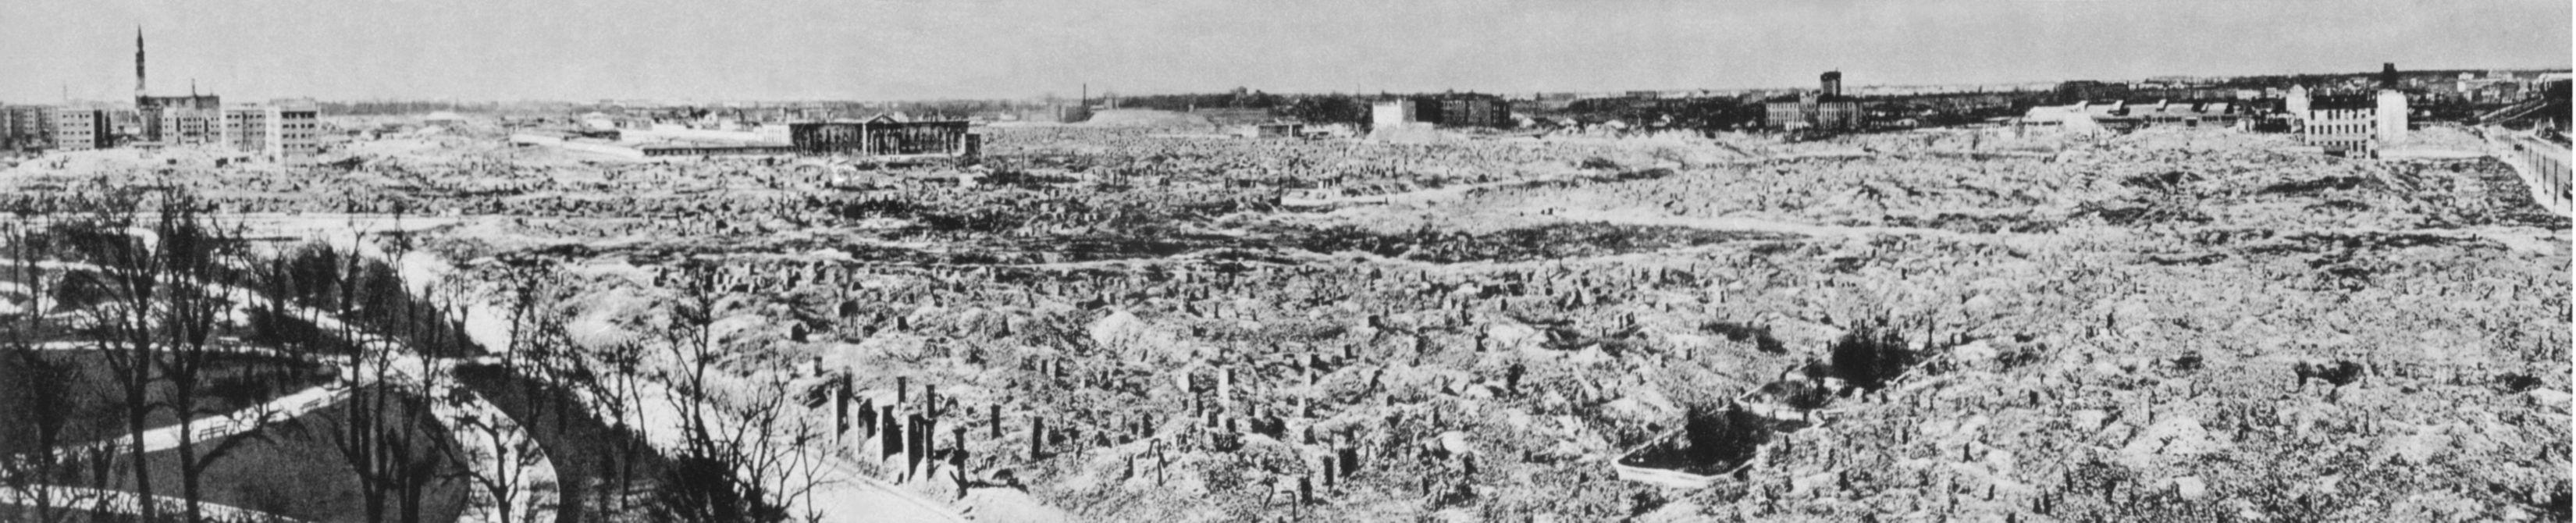 Ruins of Warsaw Ghetto, leveled by German forces, according to Adolf Hitler's order, after suppressing of the Warsaw Ghetto Uprising in 1943. North-west view, left - the Krasiński`s Garden and Swiętojerska street, photo taken in 1945